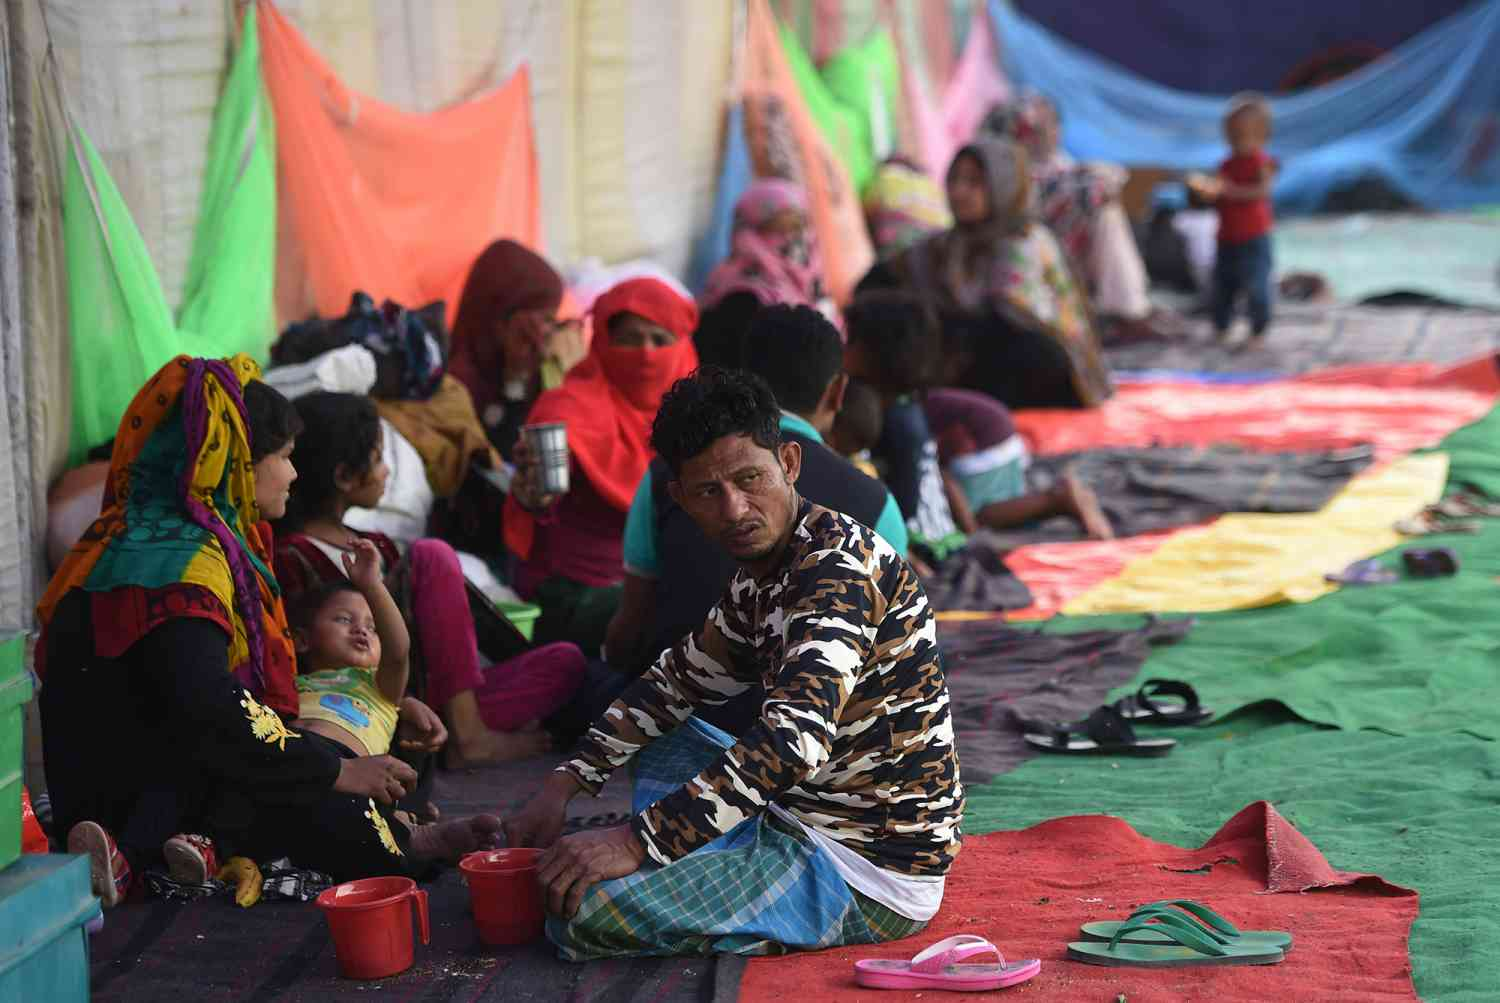 Rohingya refugees rest at a temporary shelter in New Delhi on April 16, 2018, following a fire at their refugee camp. (Photo credit: AFP).